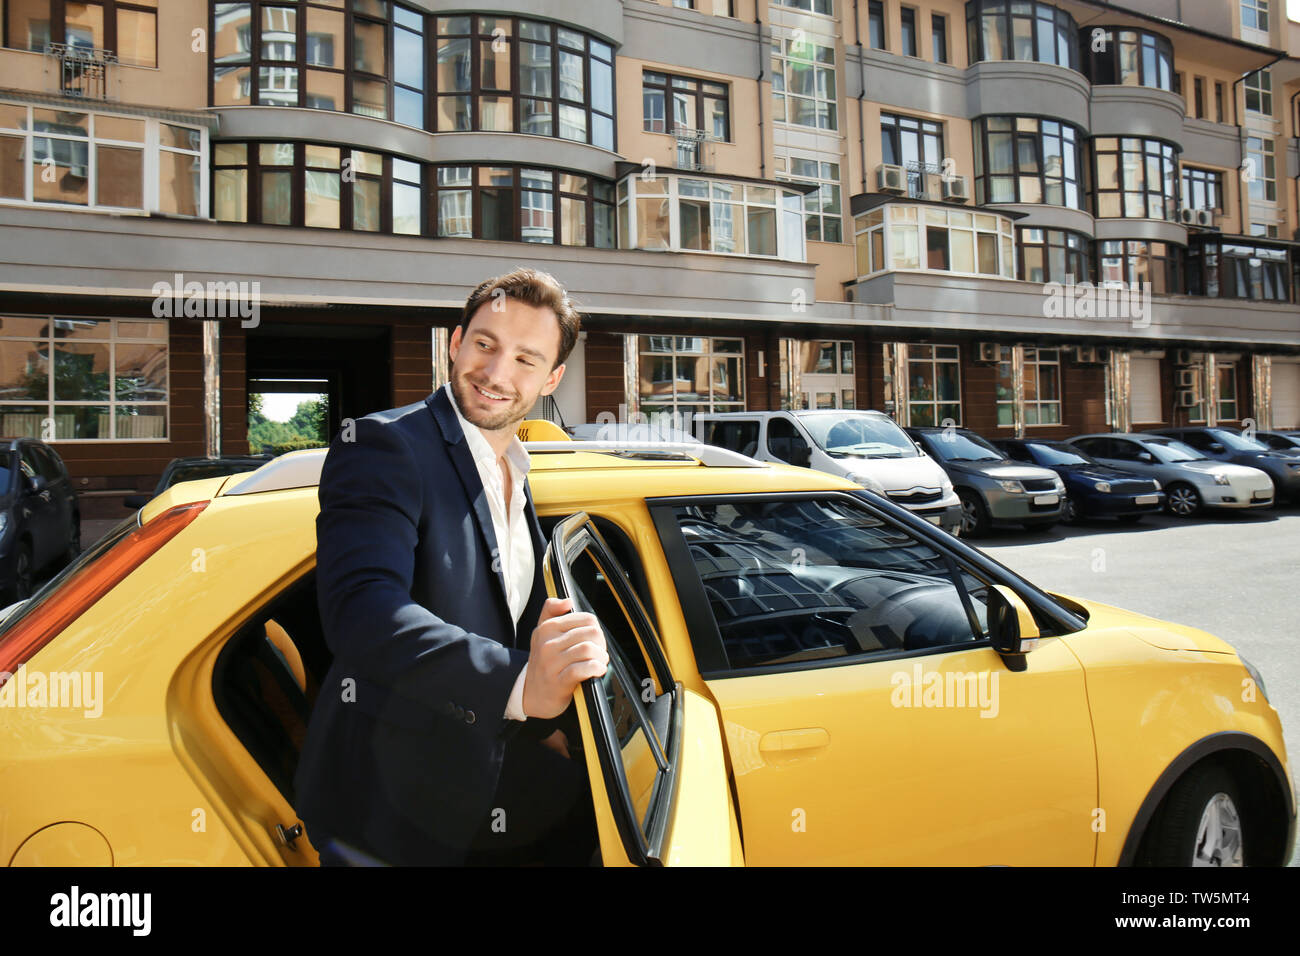 Young man standing near taxi car on street - Stock Image